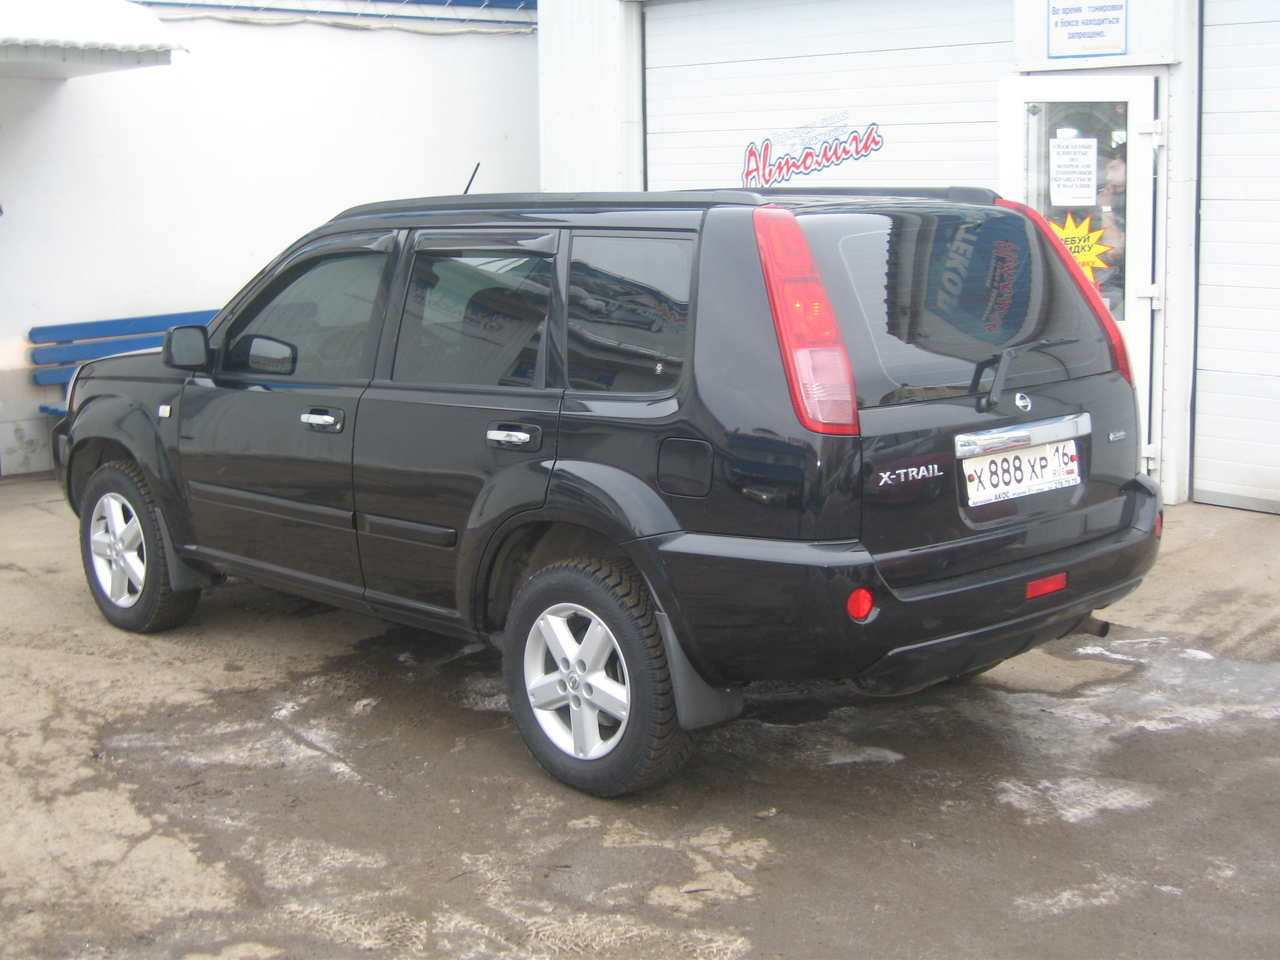 2006 nissan x trail pictures gasoline manual for sale. Black Bedroom Furniture Sets. Home Design Ideas